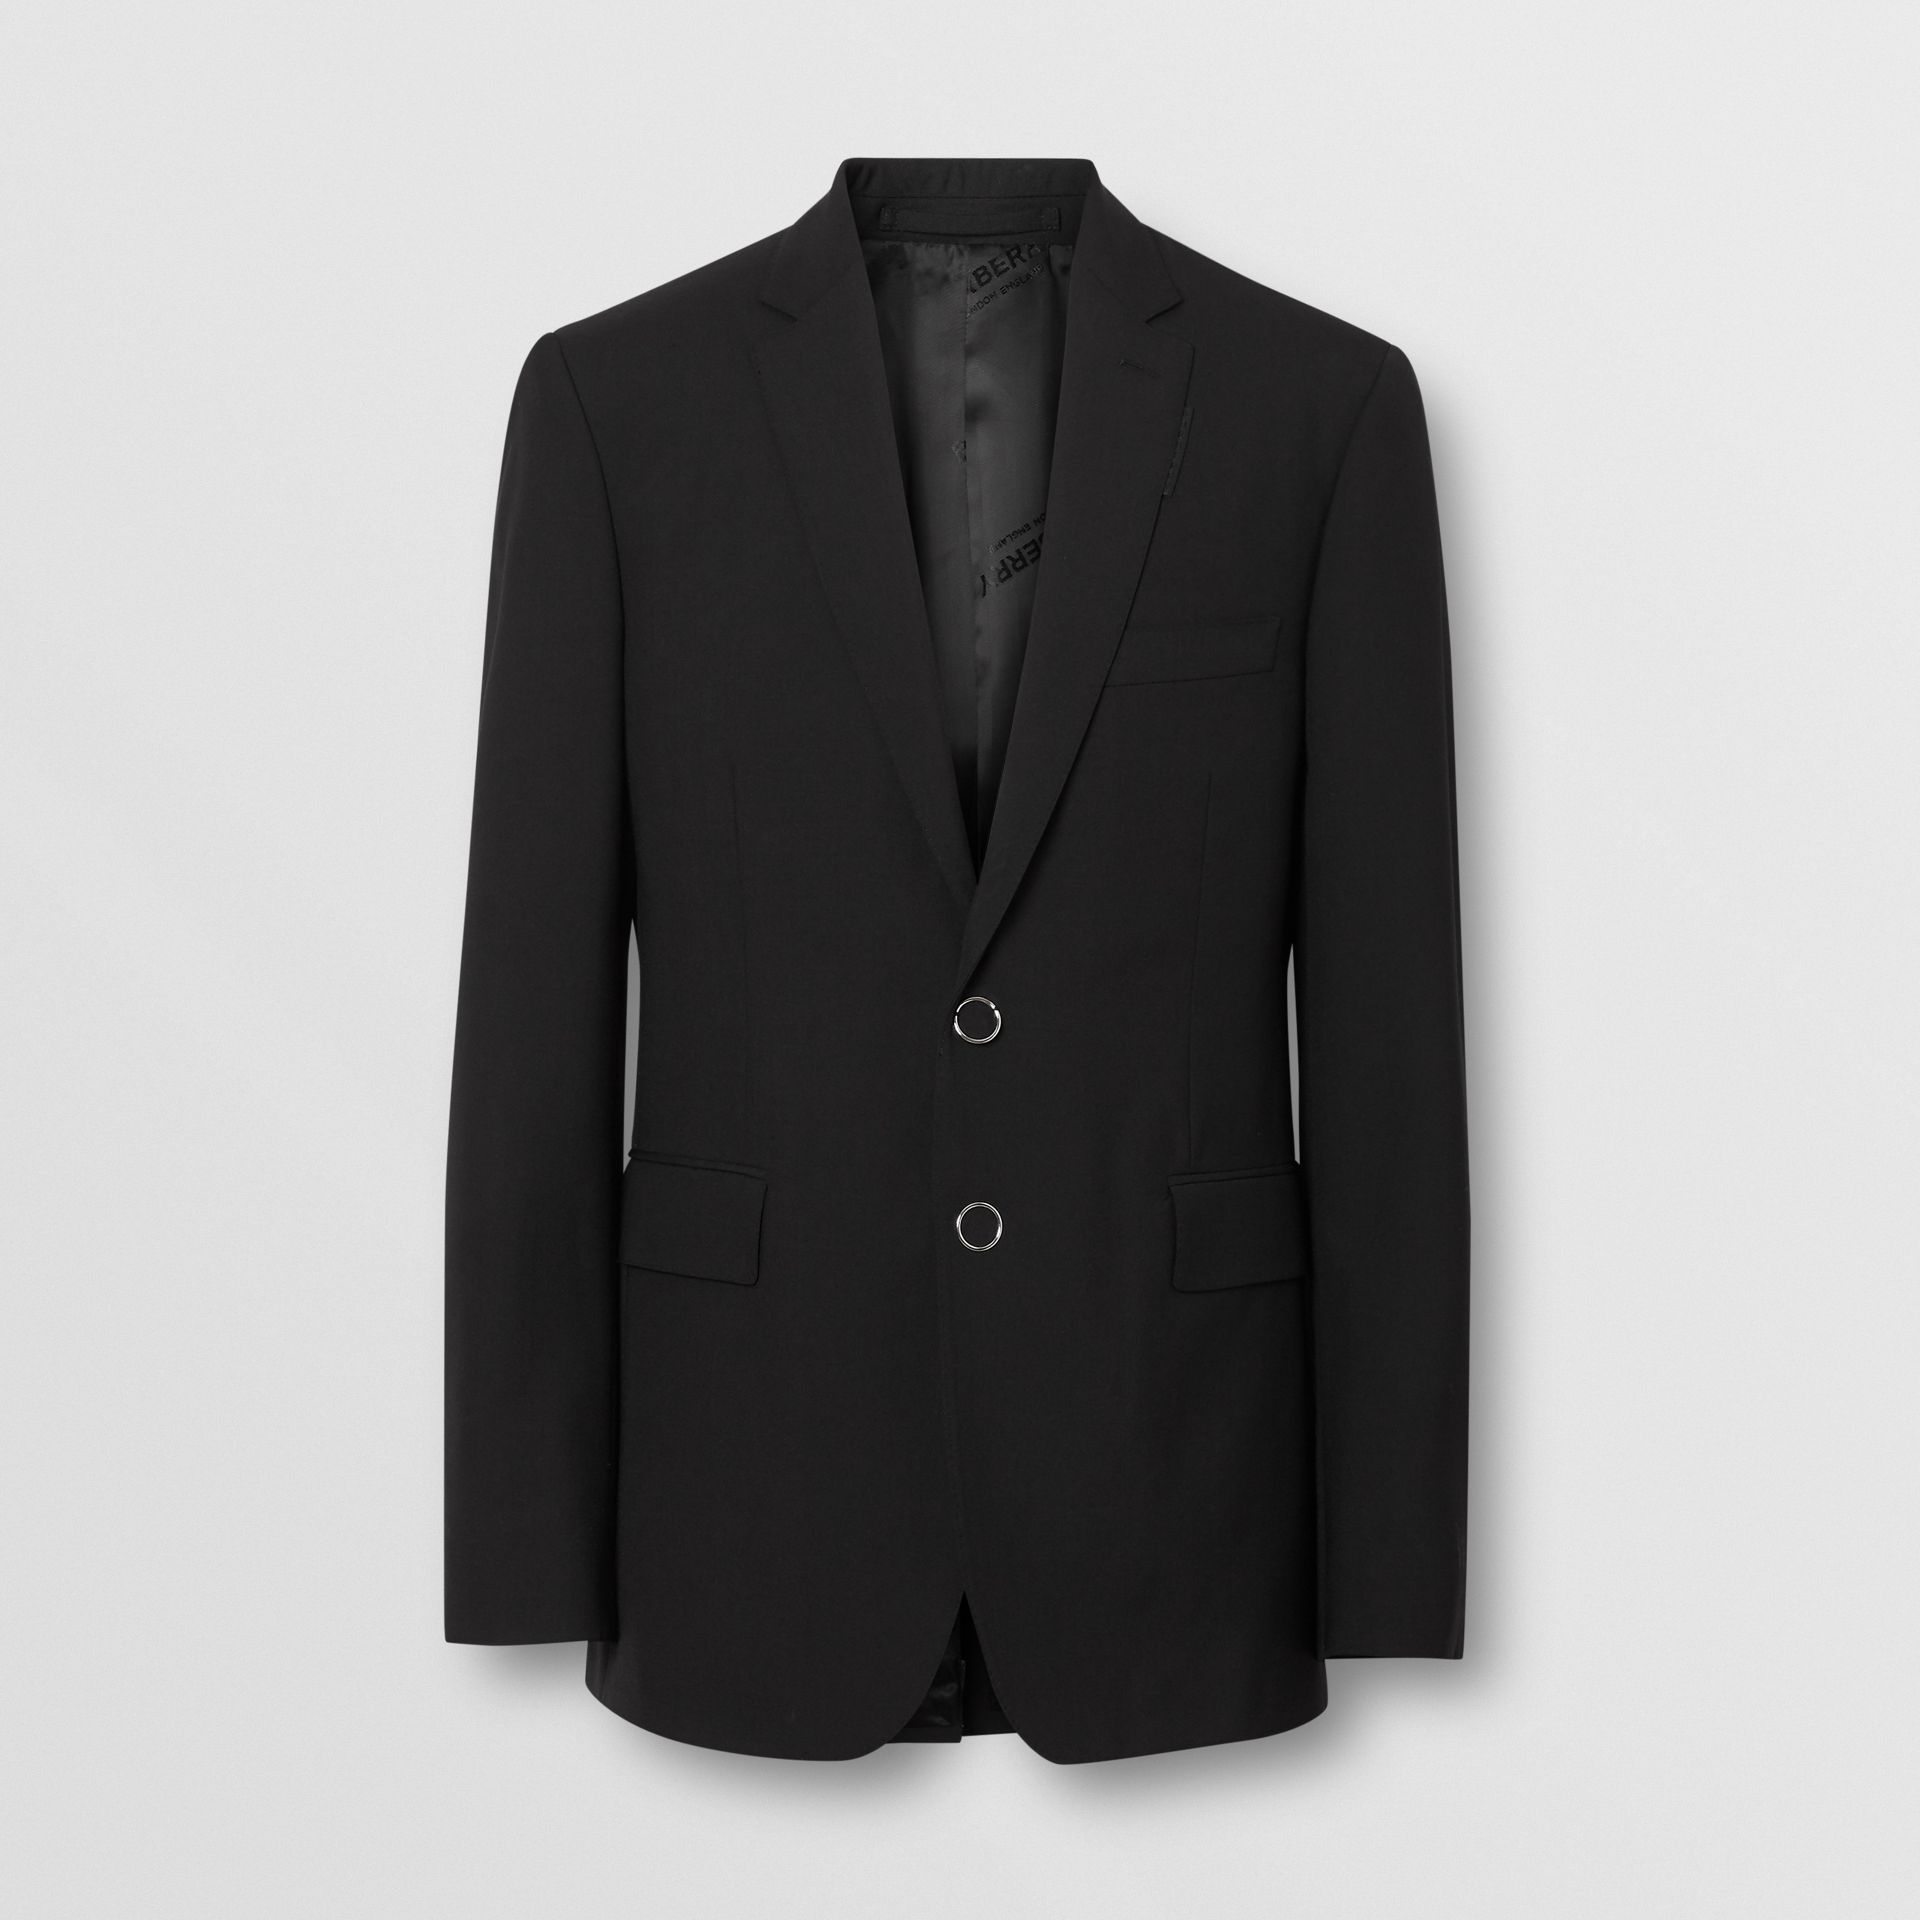 Slim Fit Press-stud Tumbled Wool Tailored Jacket in Black - Men | Burberry Hong Kong S.A.R - gallery image 3